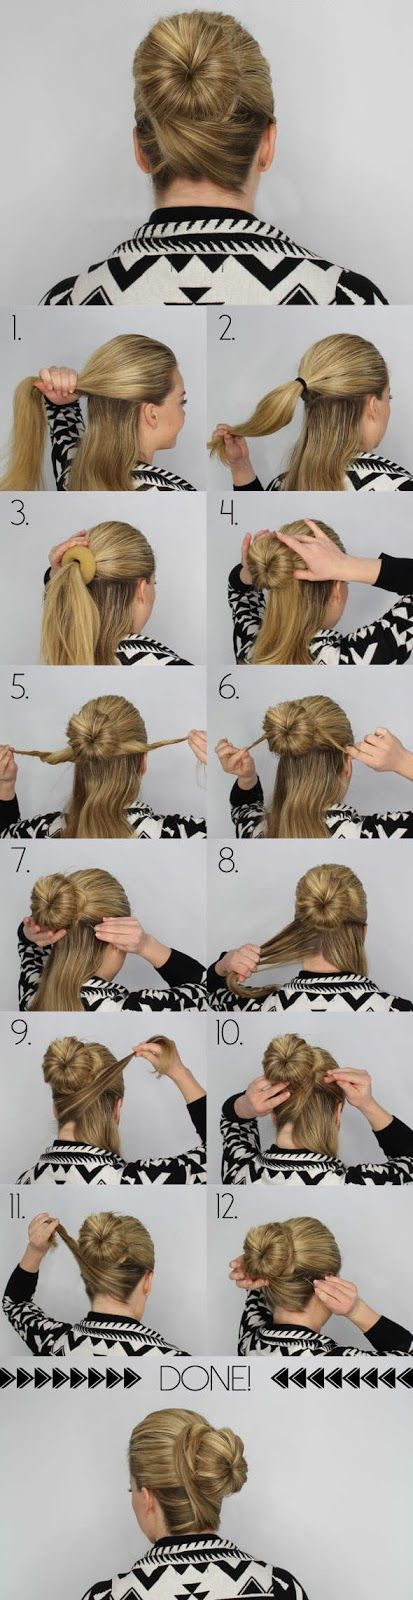 Easy Five Minutes hair Tutorials | trends4everyone